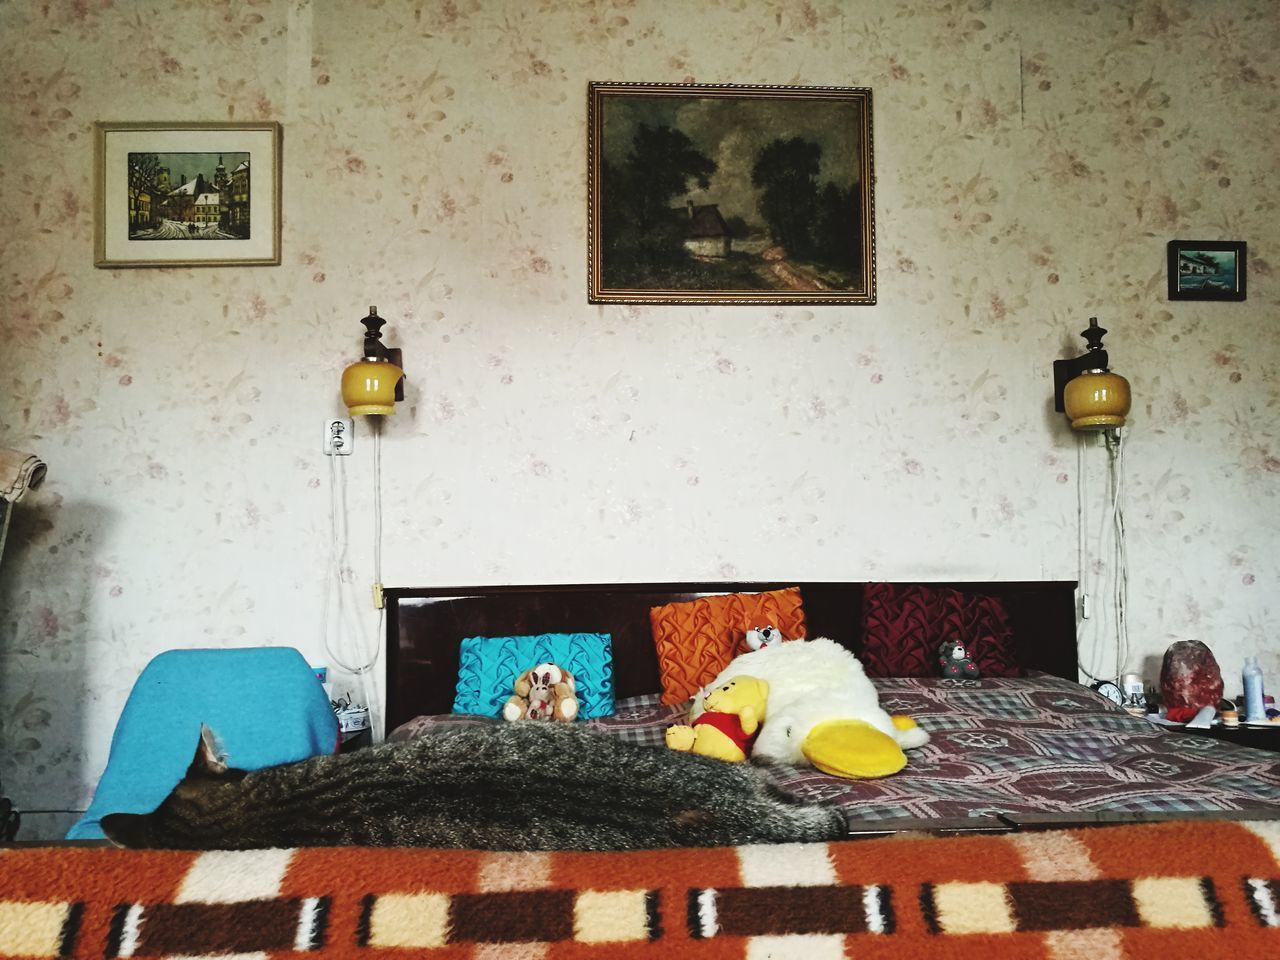 Enterior Animal Themes Living Room Bed Pillow No People Indoor Hungarian Bedroom Sleeping Cat Cat Old Fashion Style